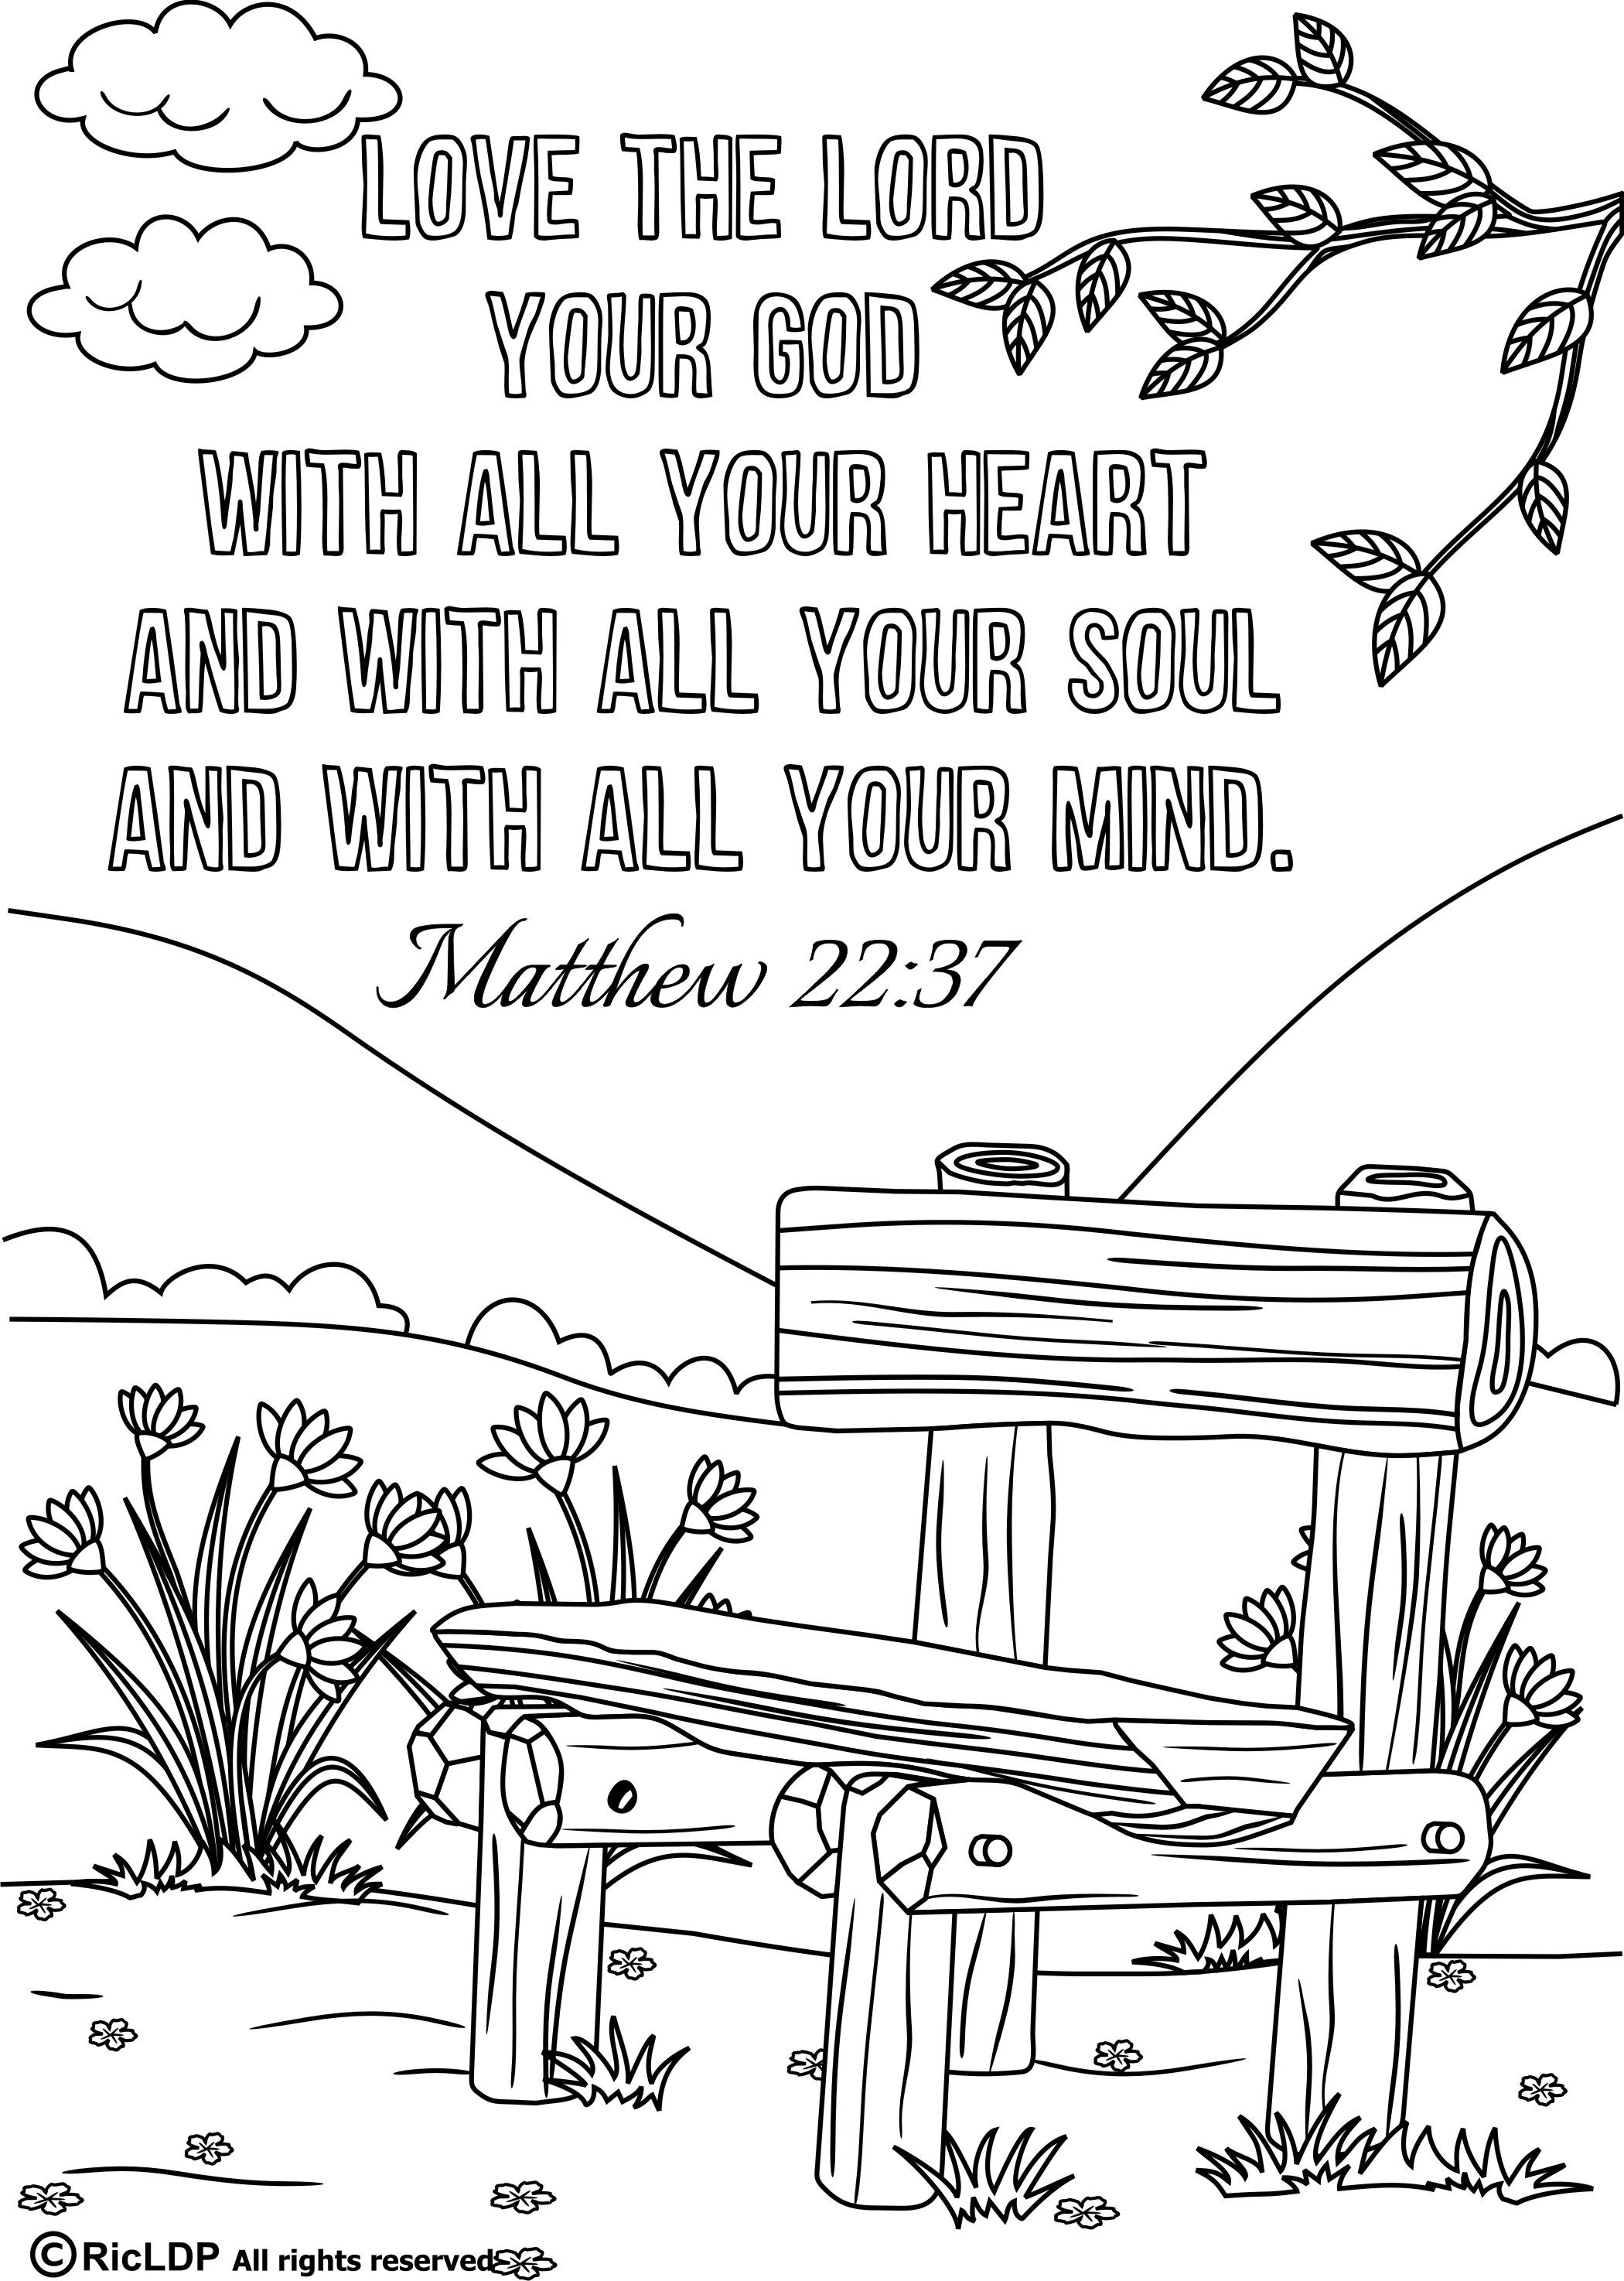 coloring bible verses for kids 11 bible verses to teach kids with printables to color kids verses bible coloring for